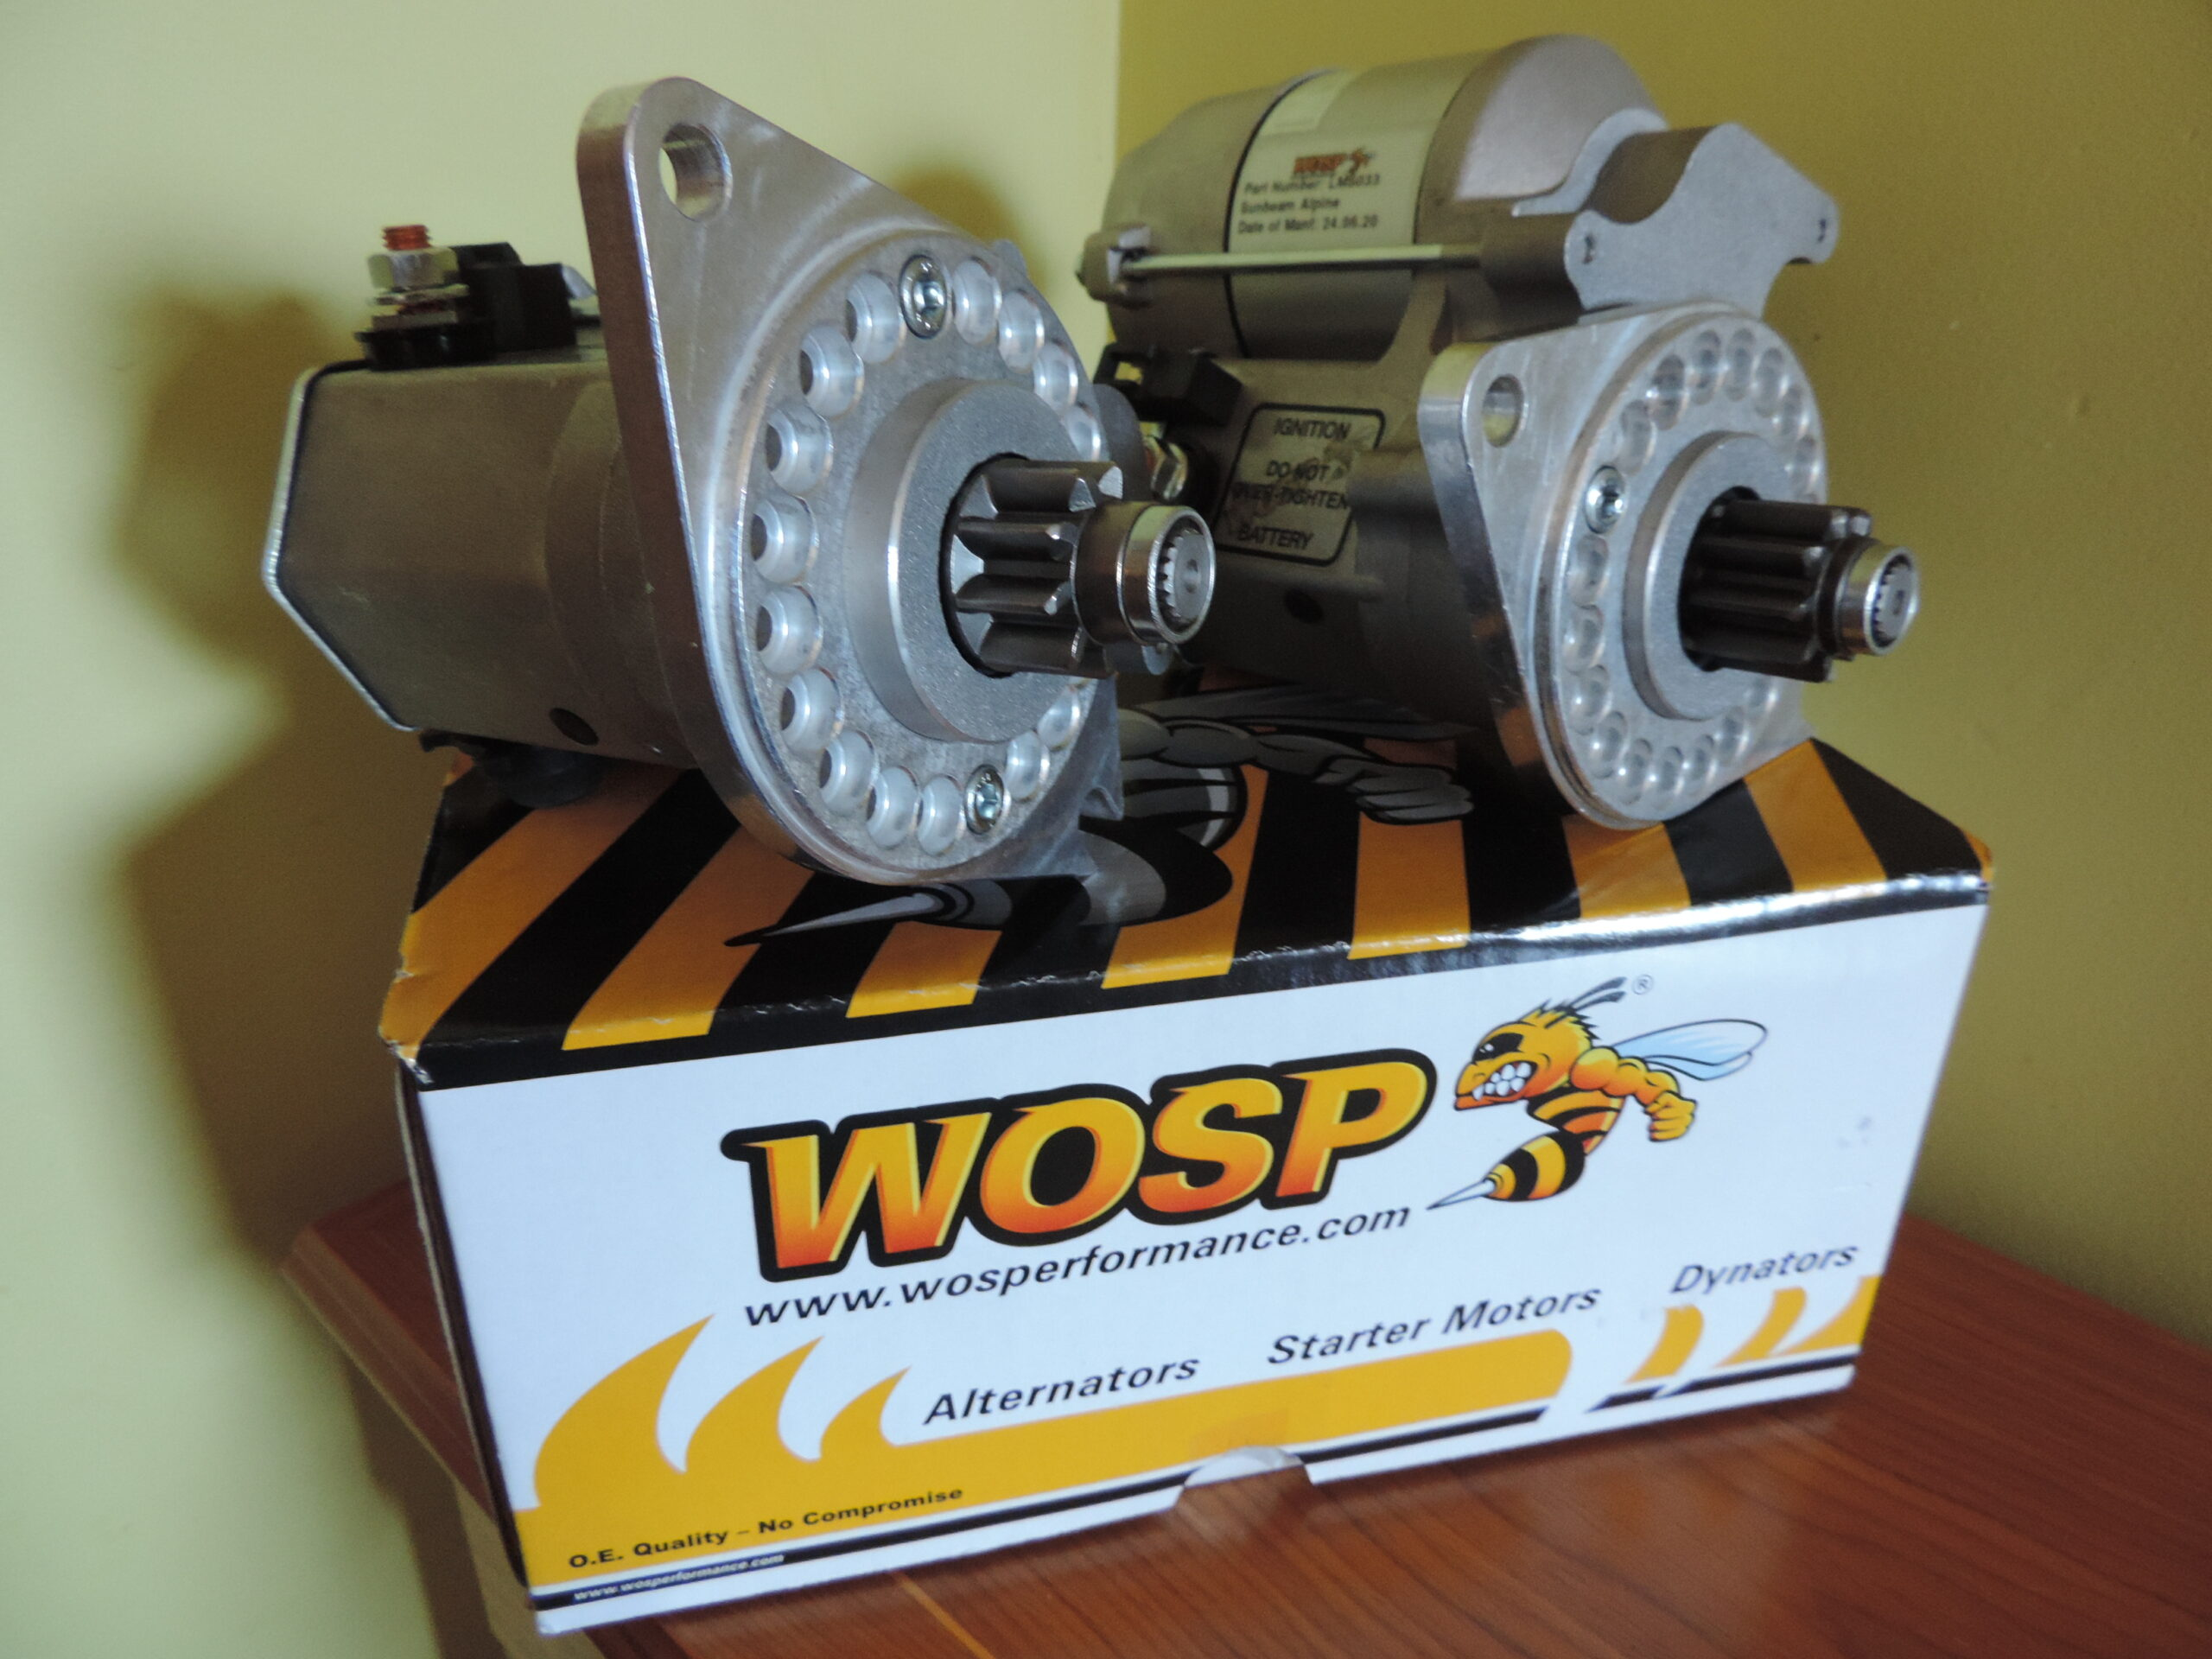 WOSP Starter Motors, Alternators, Dynators